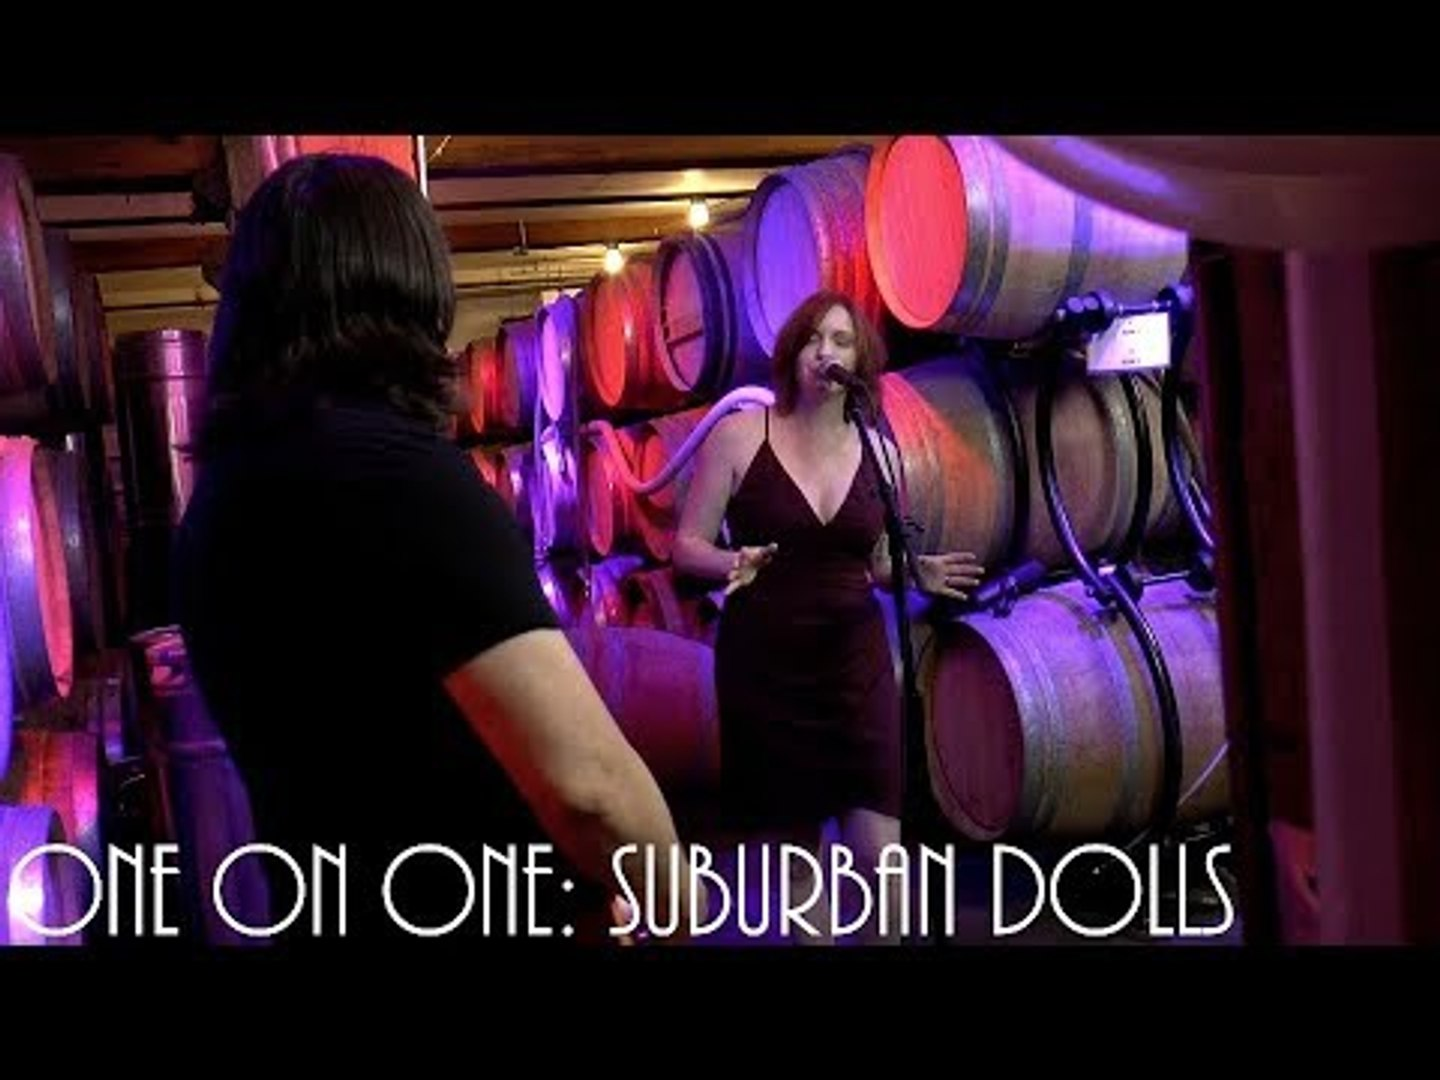 Cellar Sessions: Plastic Angels - Suburban Dolls August 25th, 2018 City Winery New York